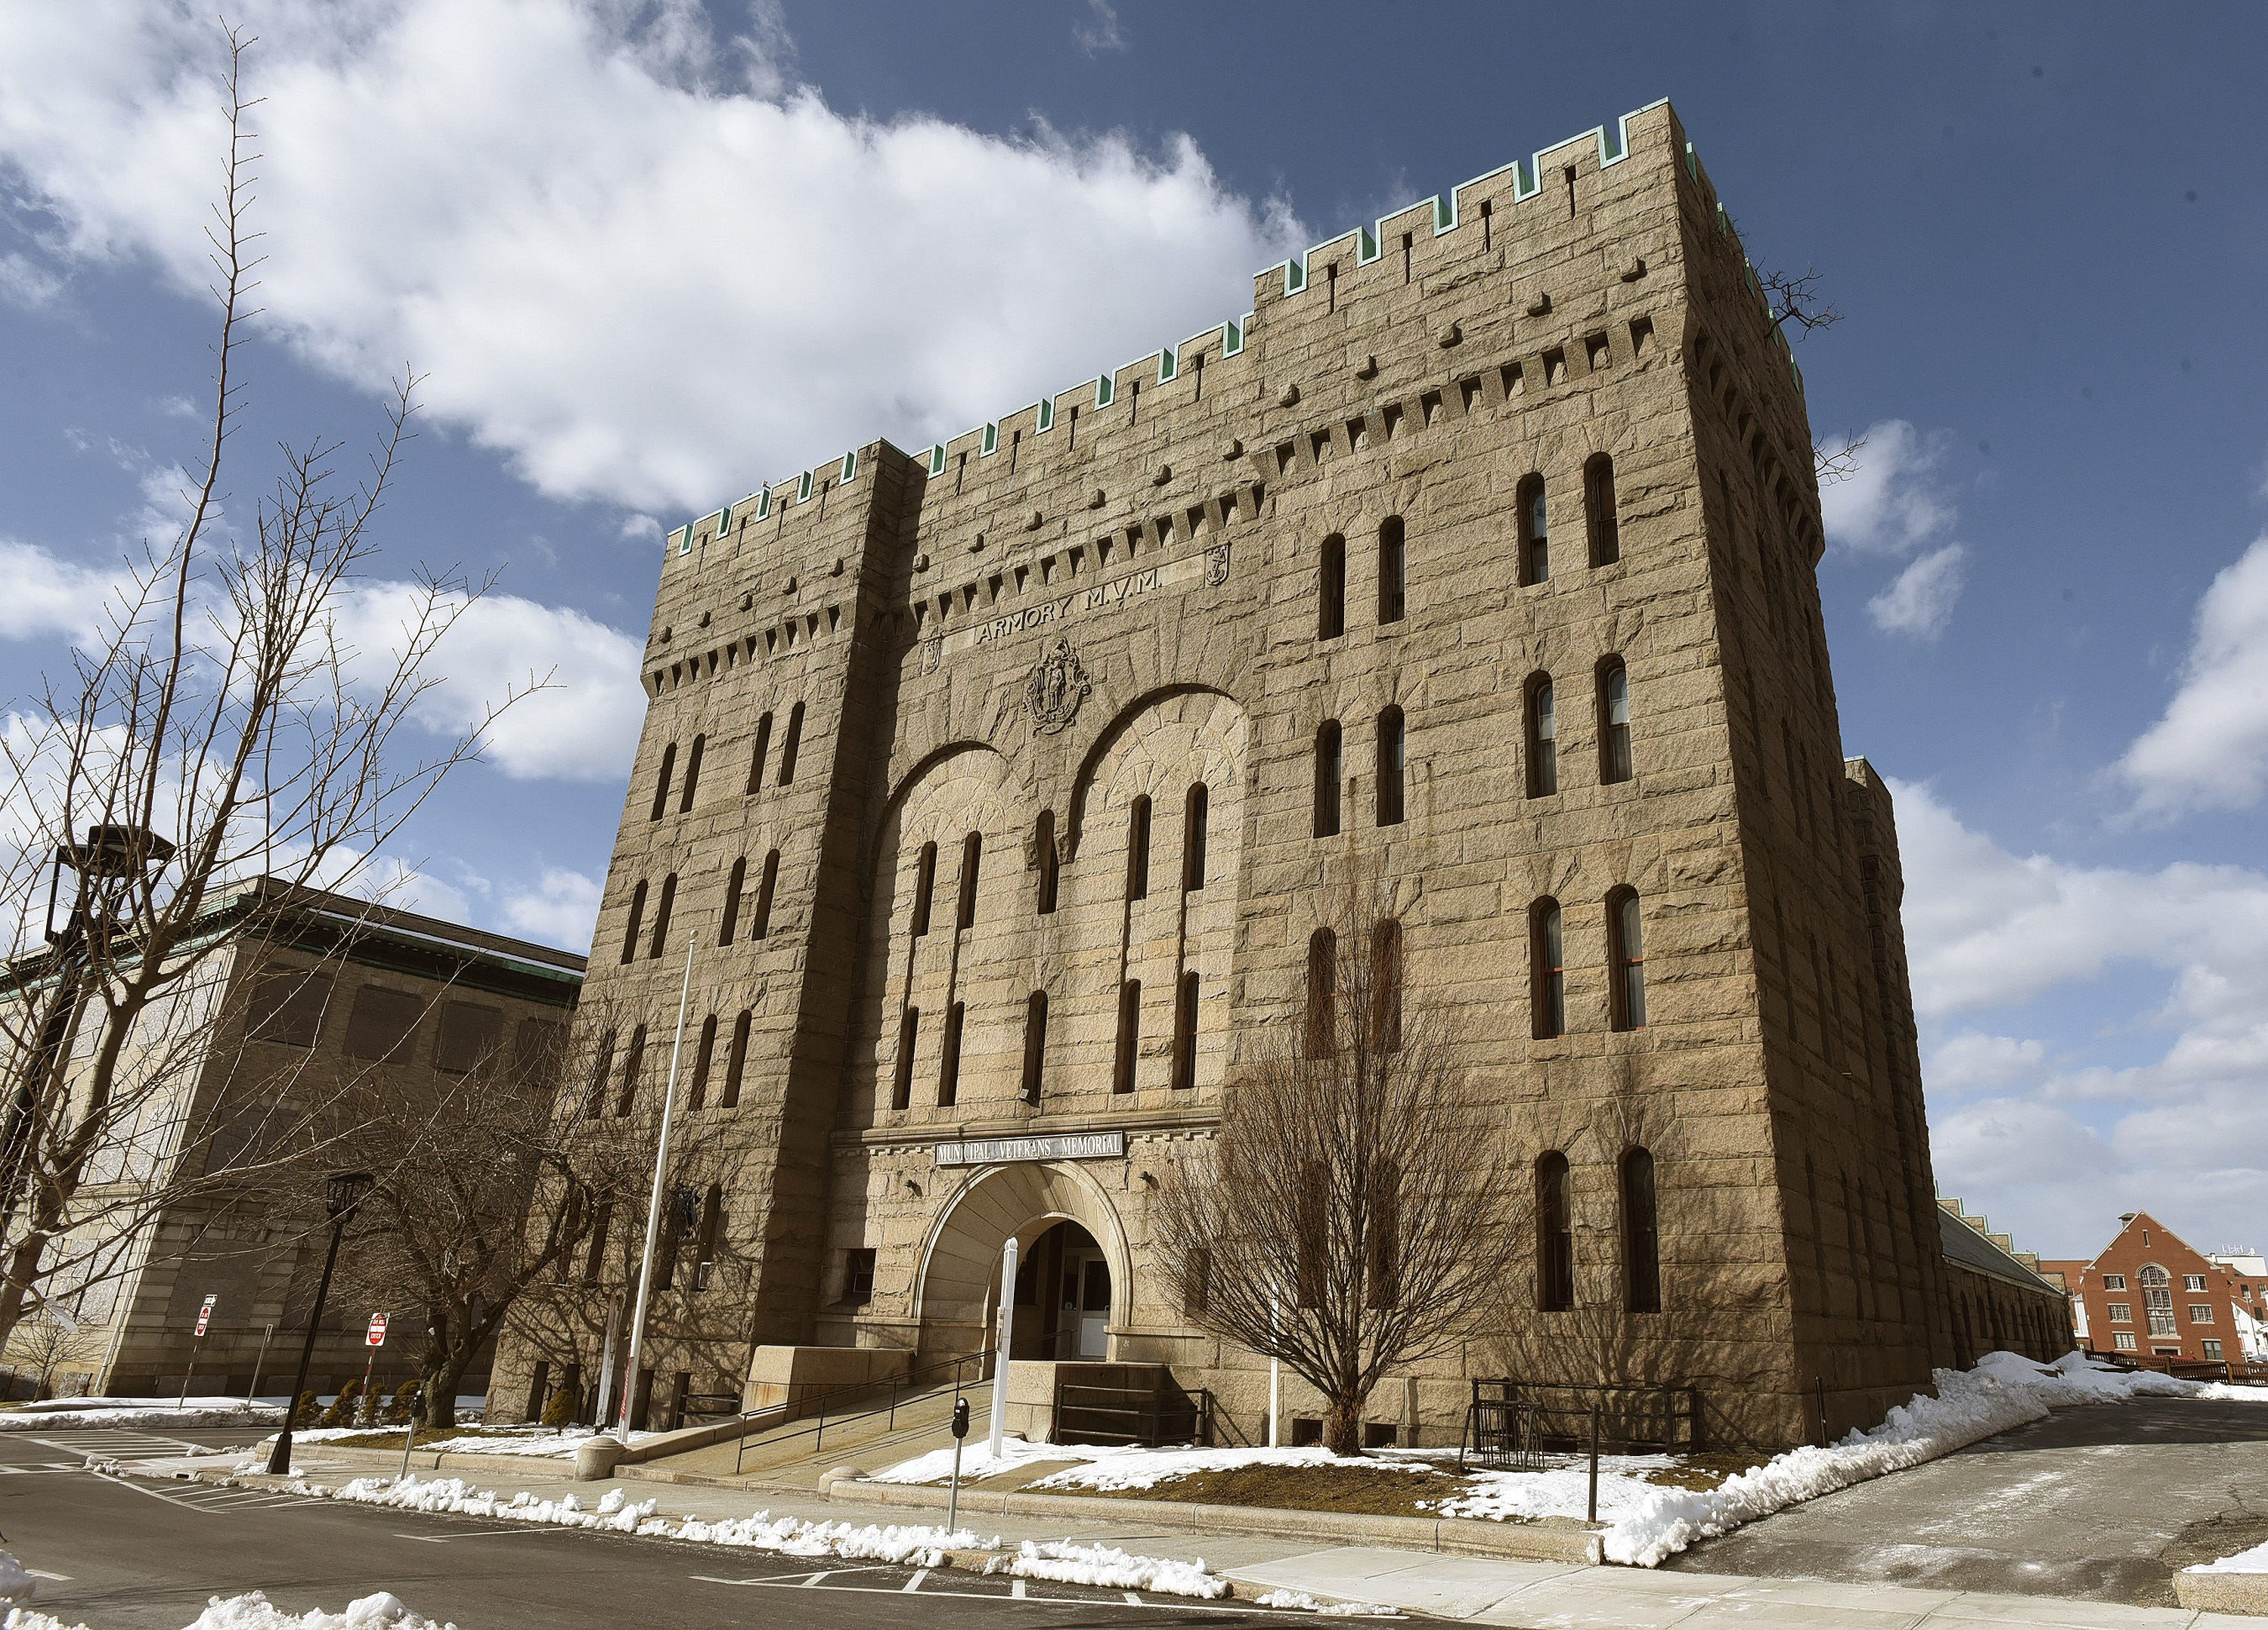 Council approves transfer of Armory for redevelopment as events center